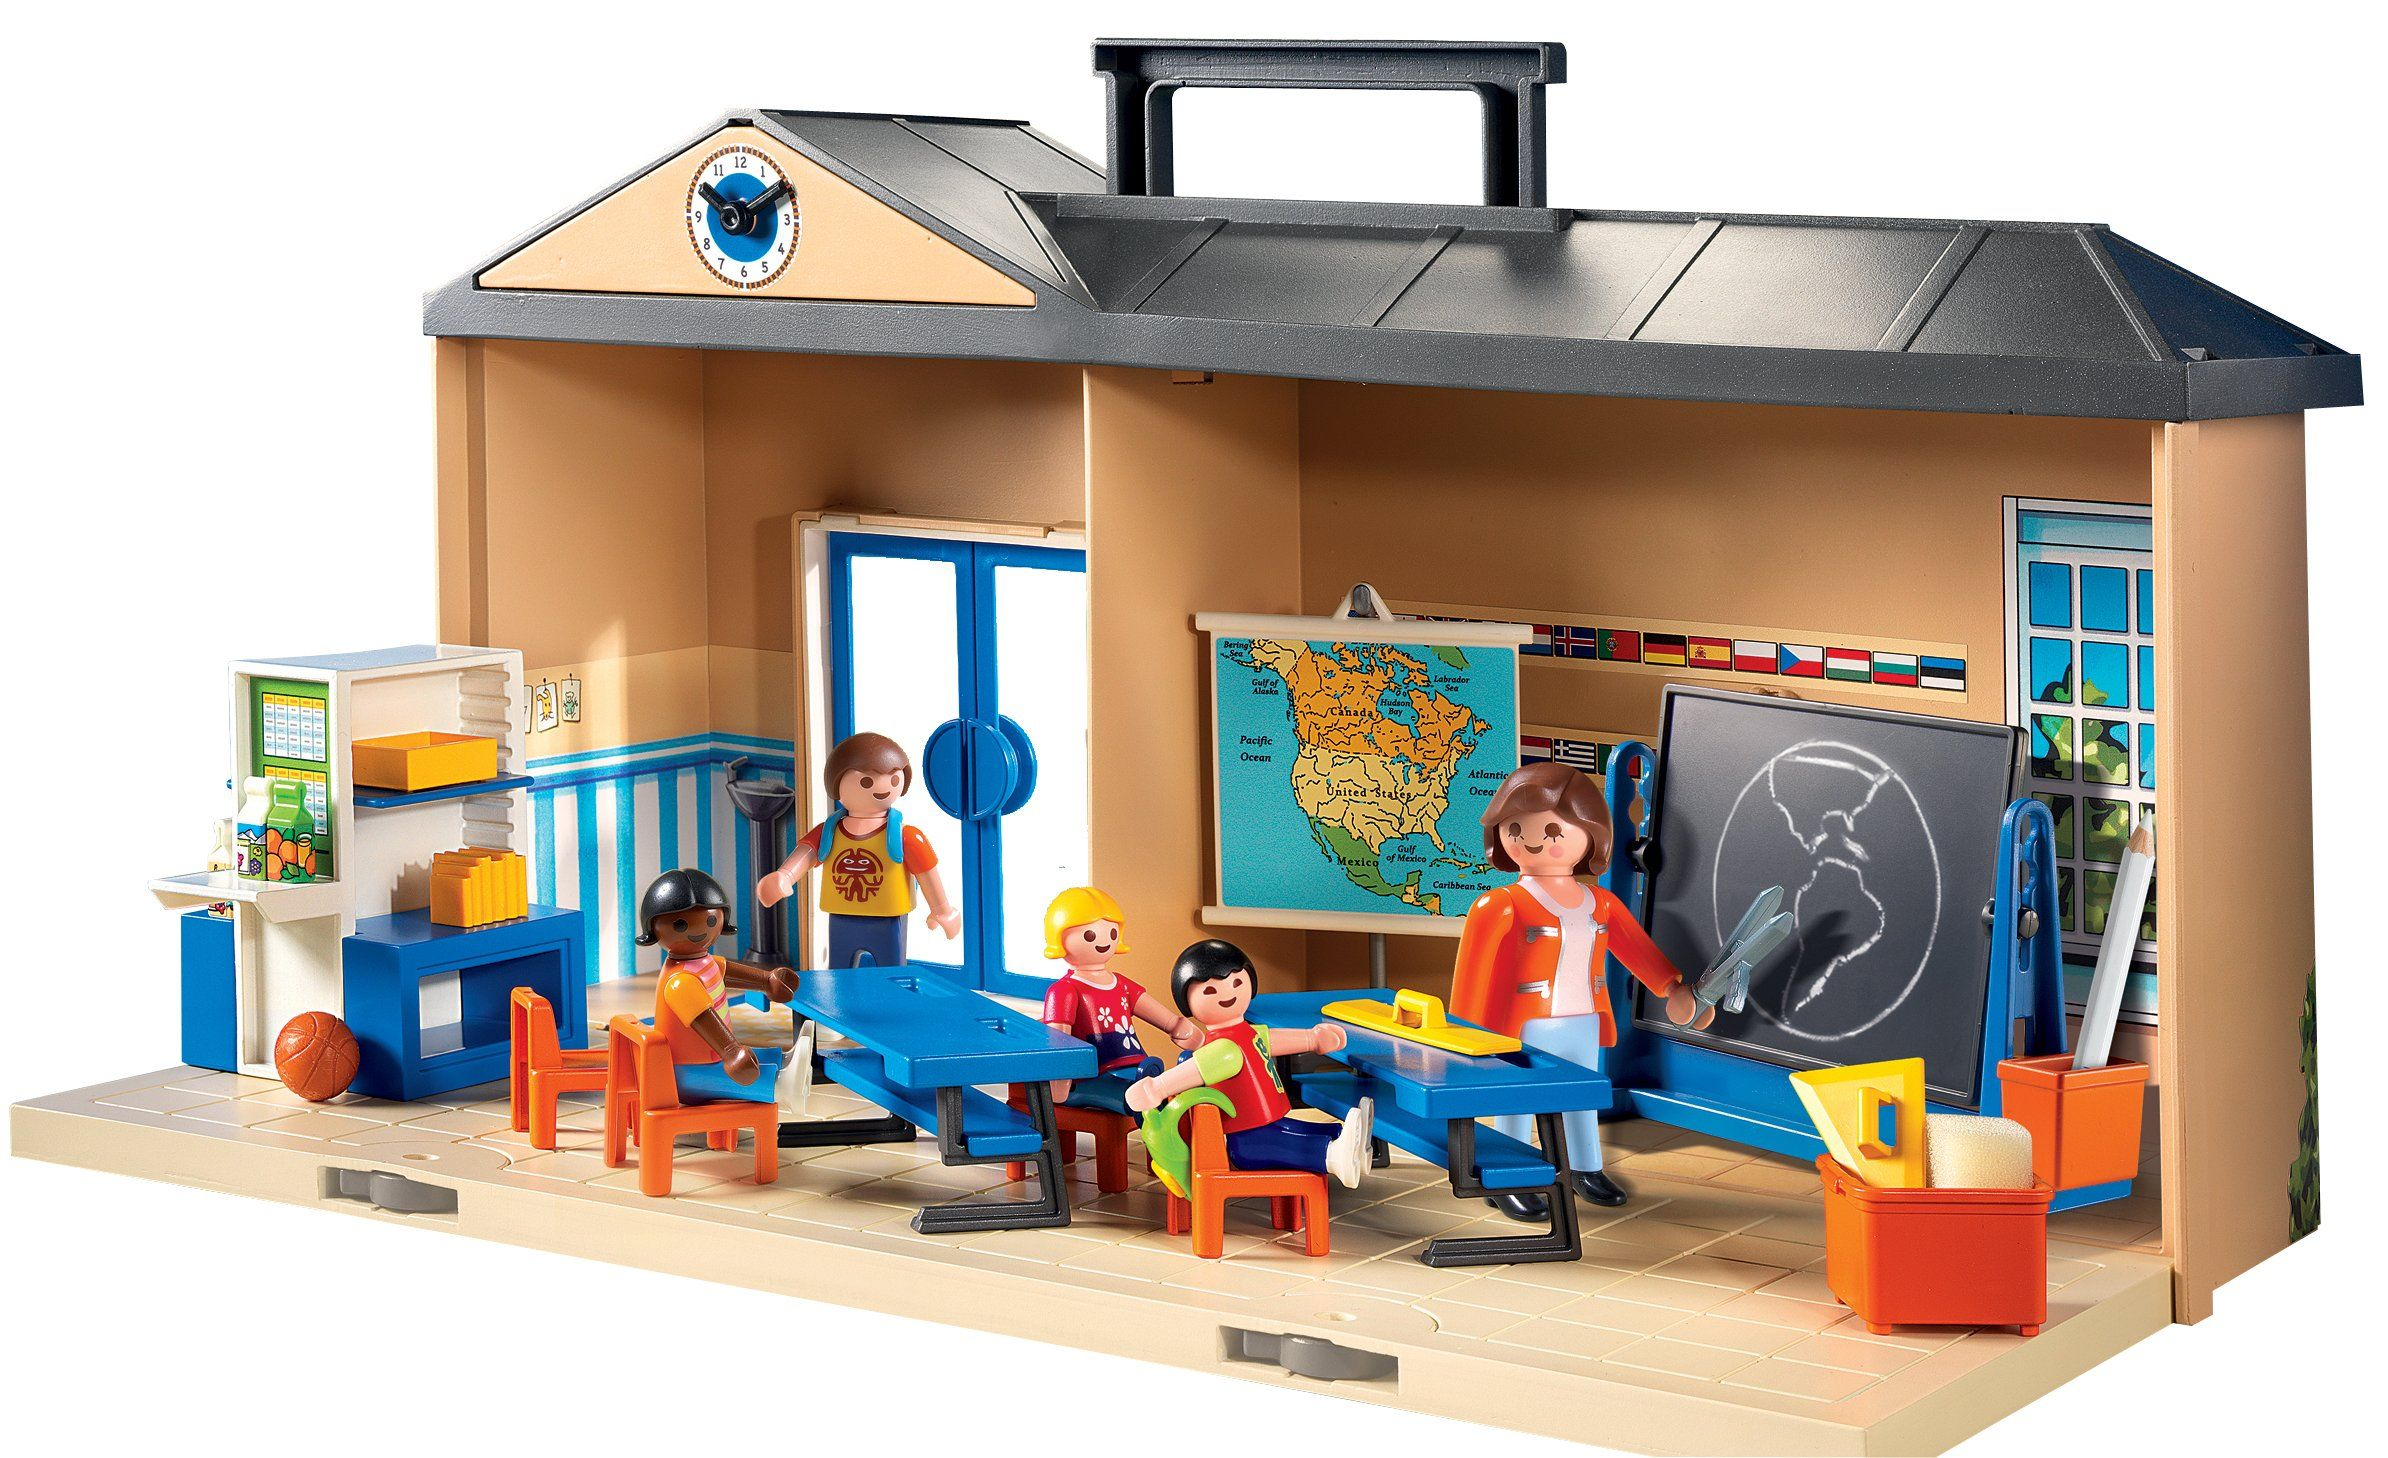 Playmobil Sets Definitely A Splurge Gift Playmobil Playsets Are Not Inexpensive But They Will Always Have A Special P Toys R Us Kids Playset Kindergarten Toy